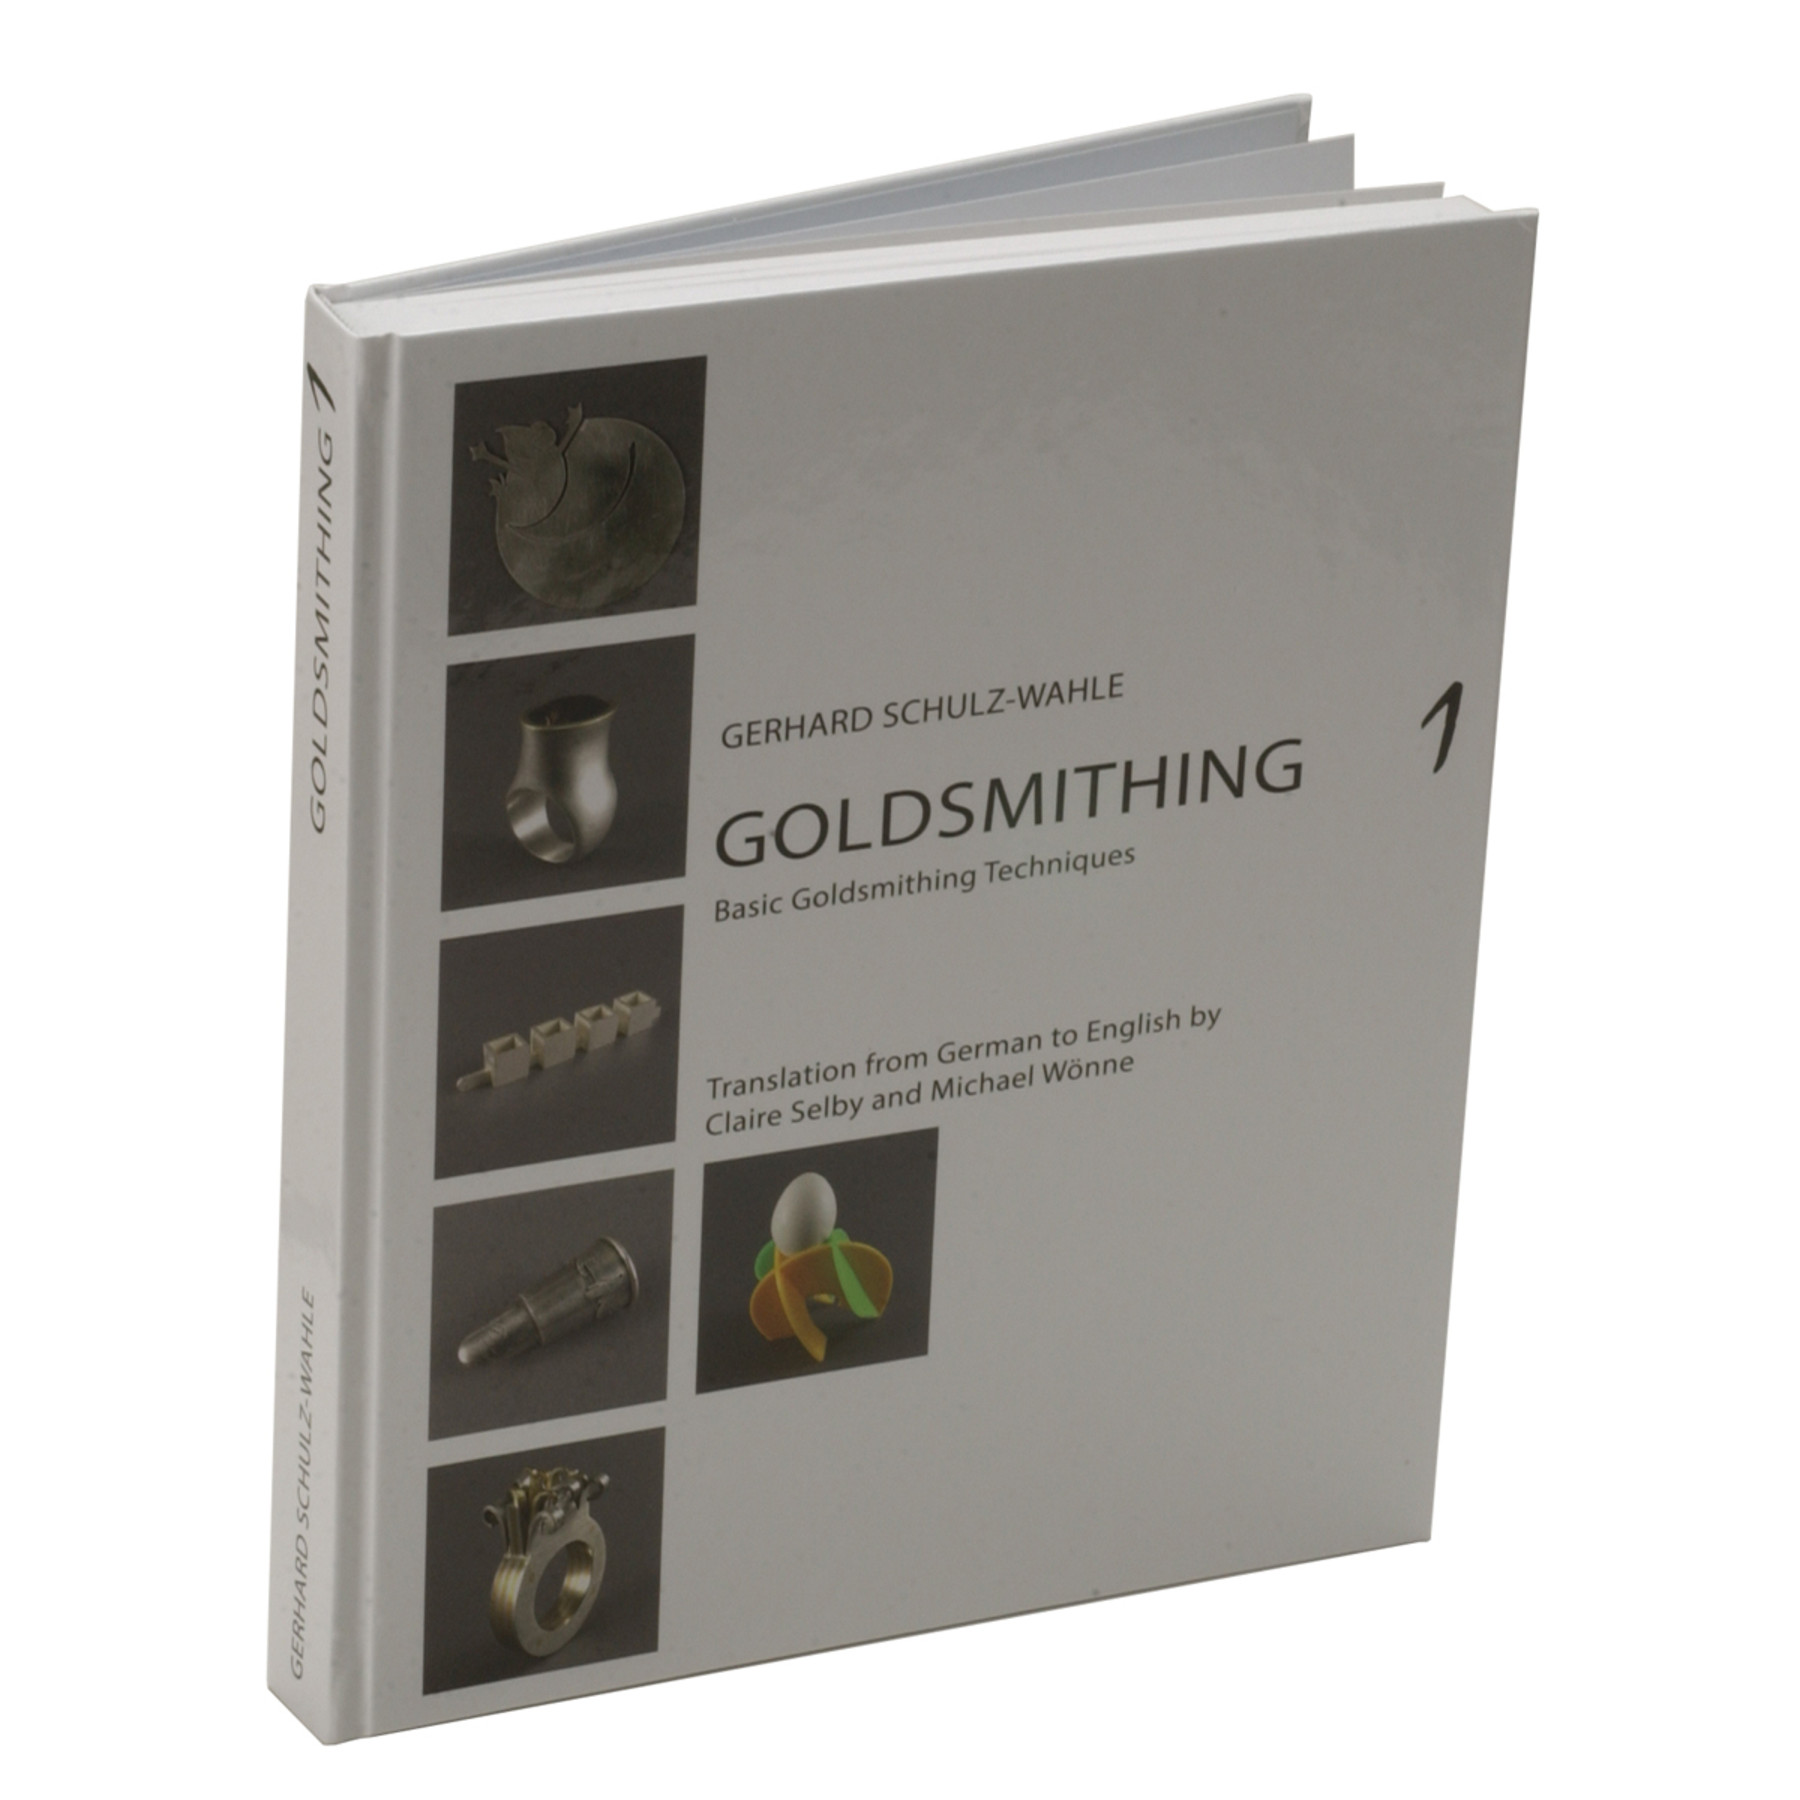 Goldsmithing 1- Basic Goldsmithing